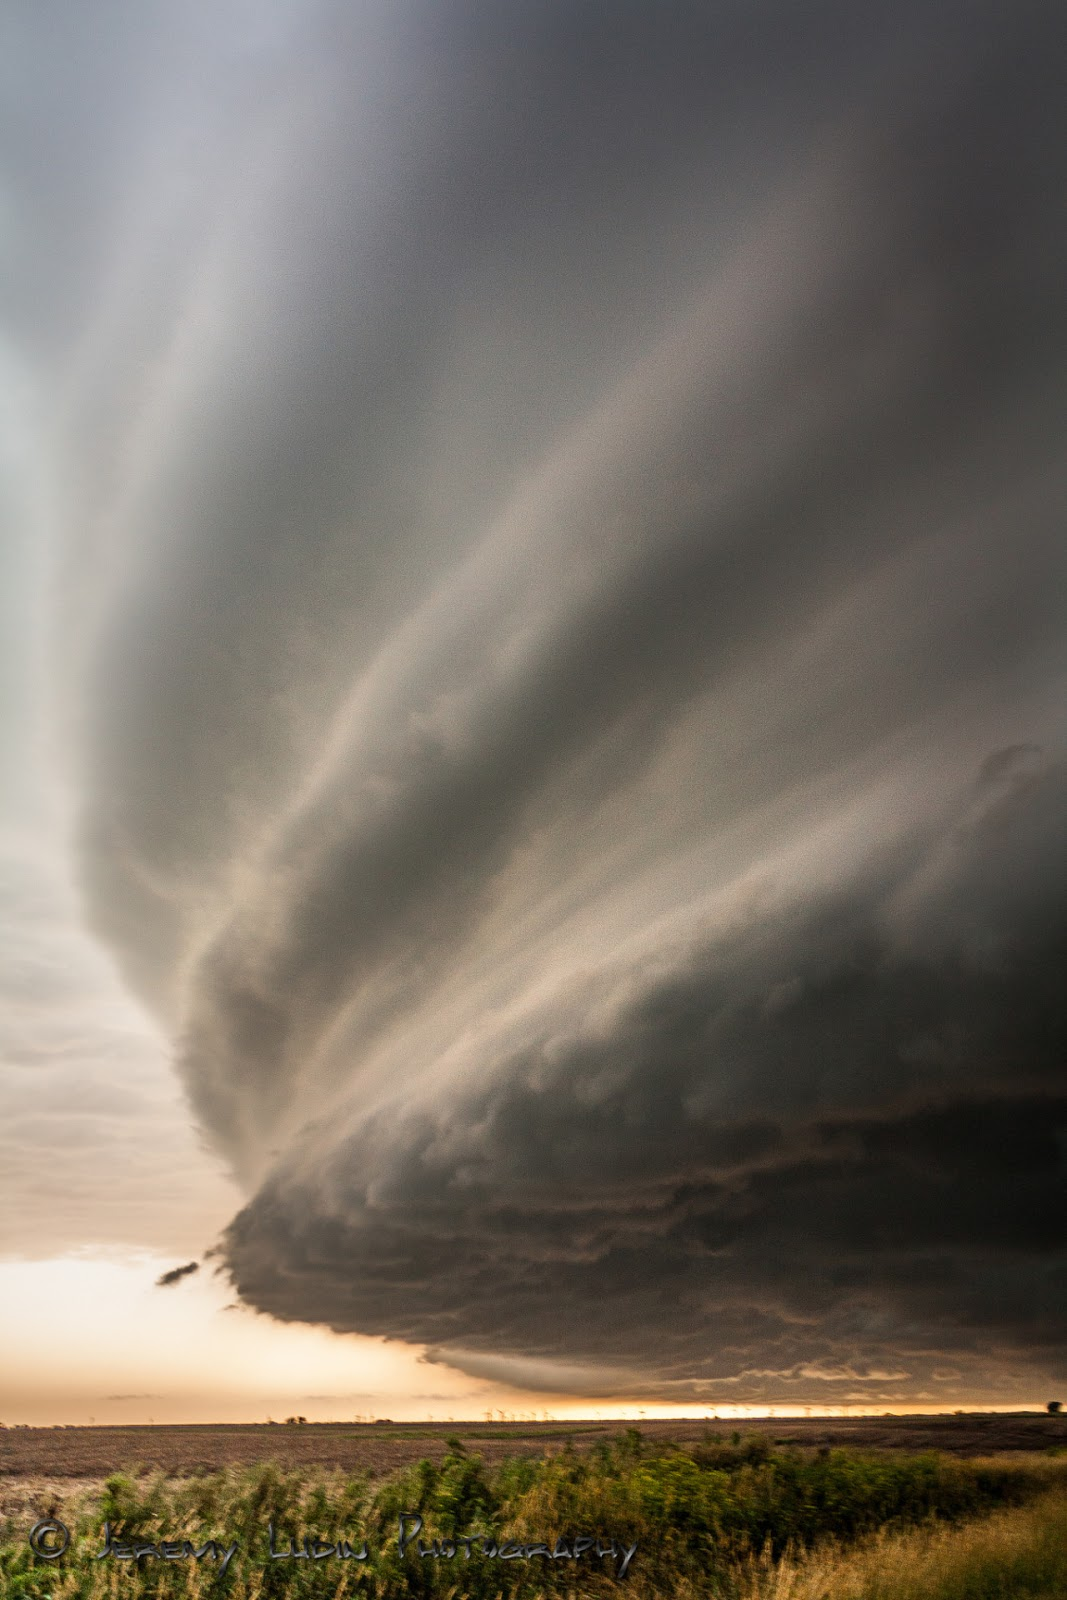 tornado supercell diagram one to many relationship er scary and amazing structure of thunderstorm